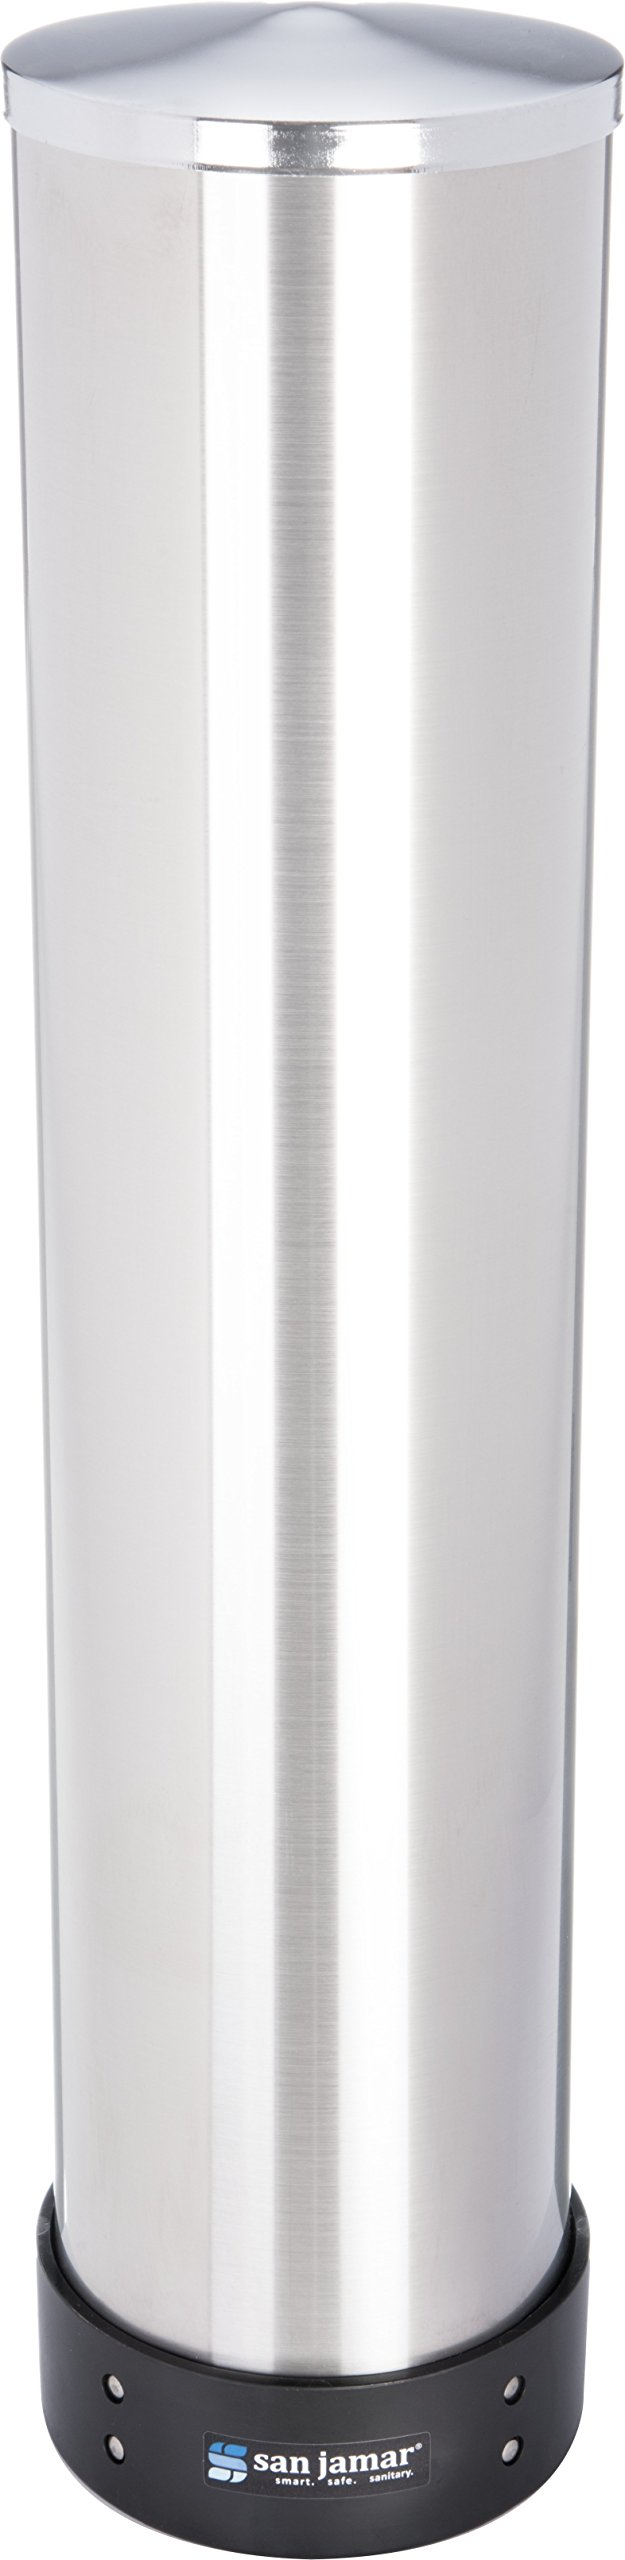 San Jamar C3500P Stainless Steel Pull Type Beverage Cup Dispenser, Fits 32oz to 46oz Cup Size, 4'' to 4-7/8'' Rim, 23-1/2'' Tube Length